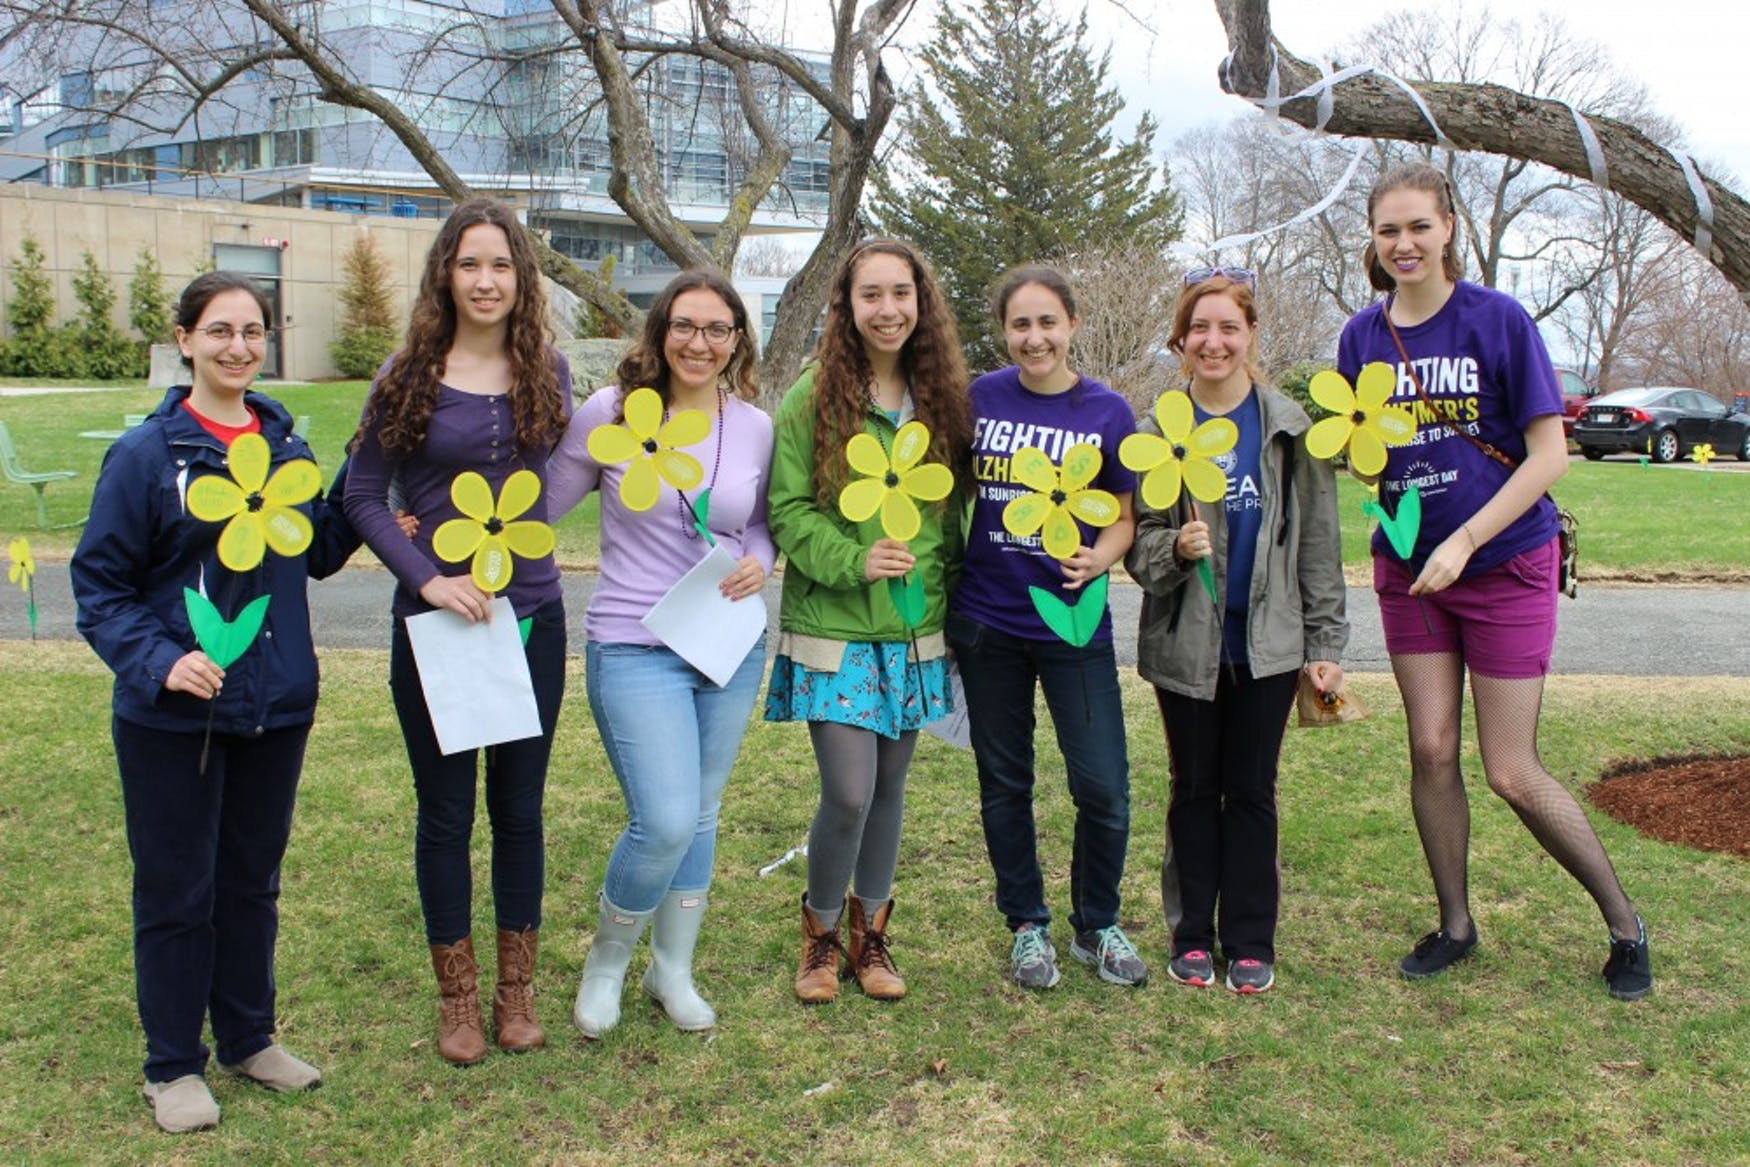 A GROUP EFFORT: Club members (left to right) Ilana Weisz '15, Bethany Rennich '17, Sarah Lipitz '17, Leah Levine '17, Arielle Keller '16, Linda Maleh '16 and Erin Radziwon '16 come together to host the Fellows Garden event on Friday, the final event of awareness week.